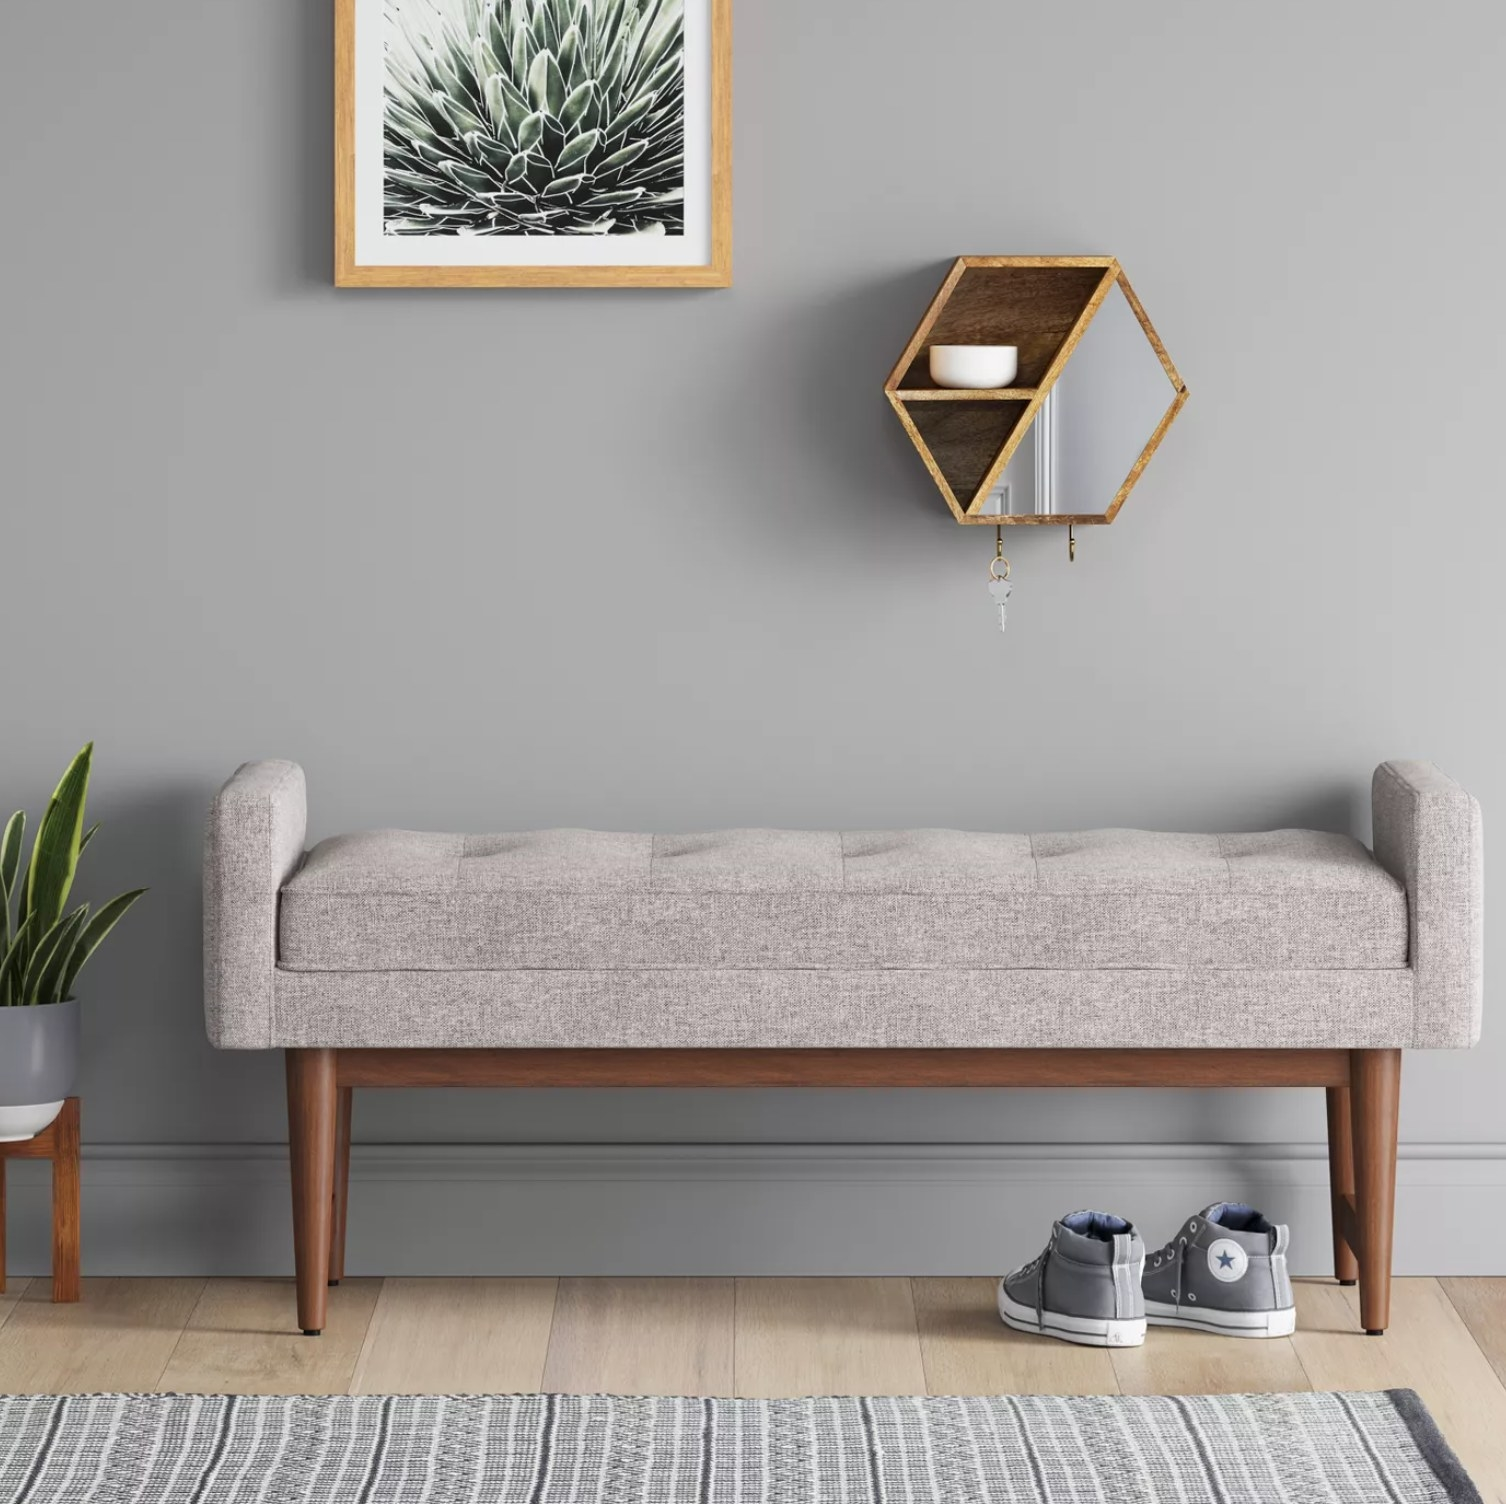 the gray bench with shoes underneath and wall decor above